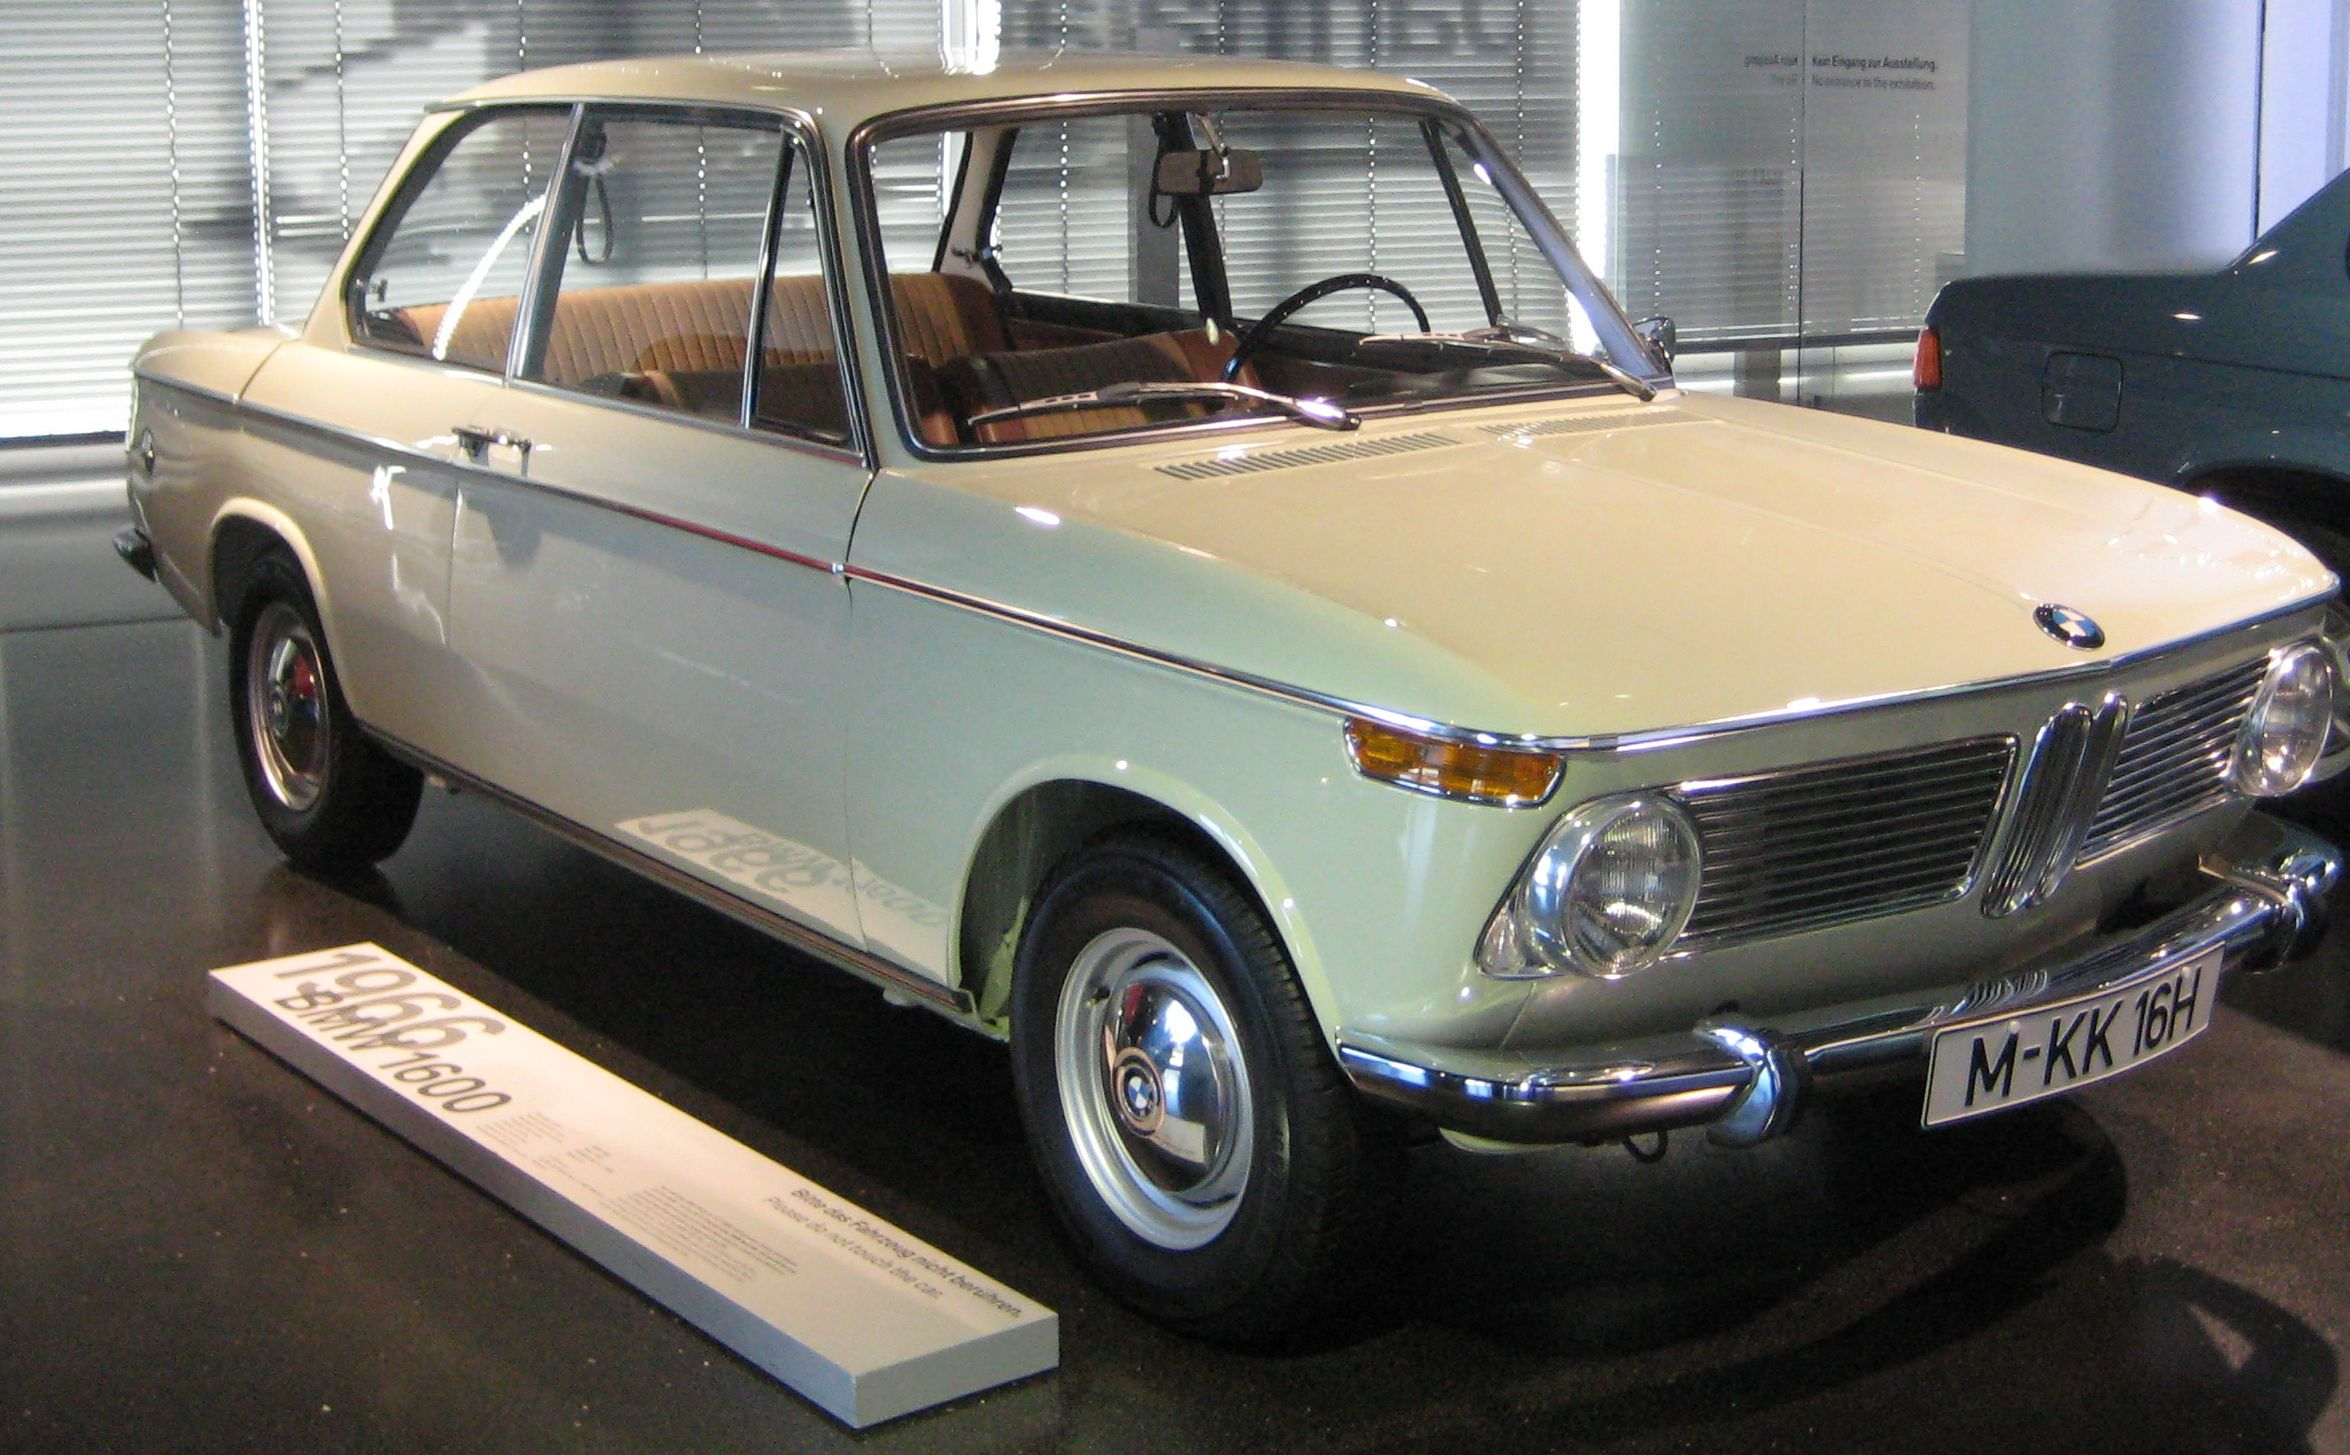 File:Great BMW 318-1966.JPG